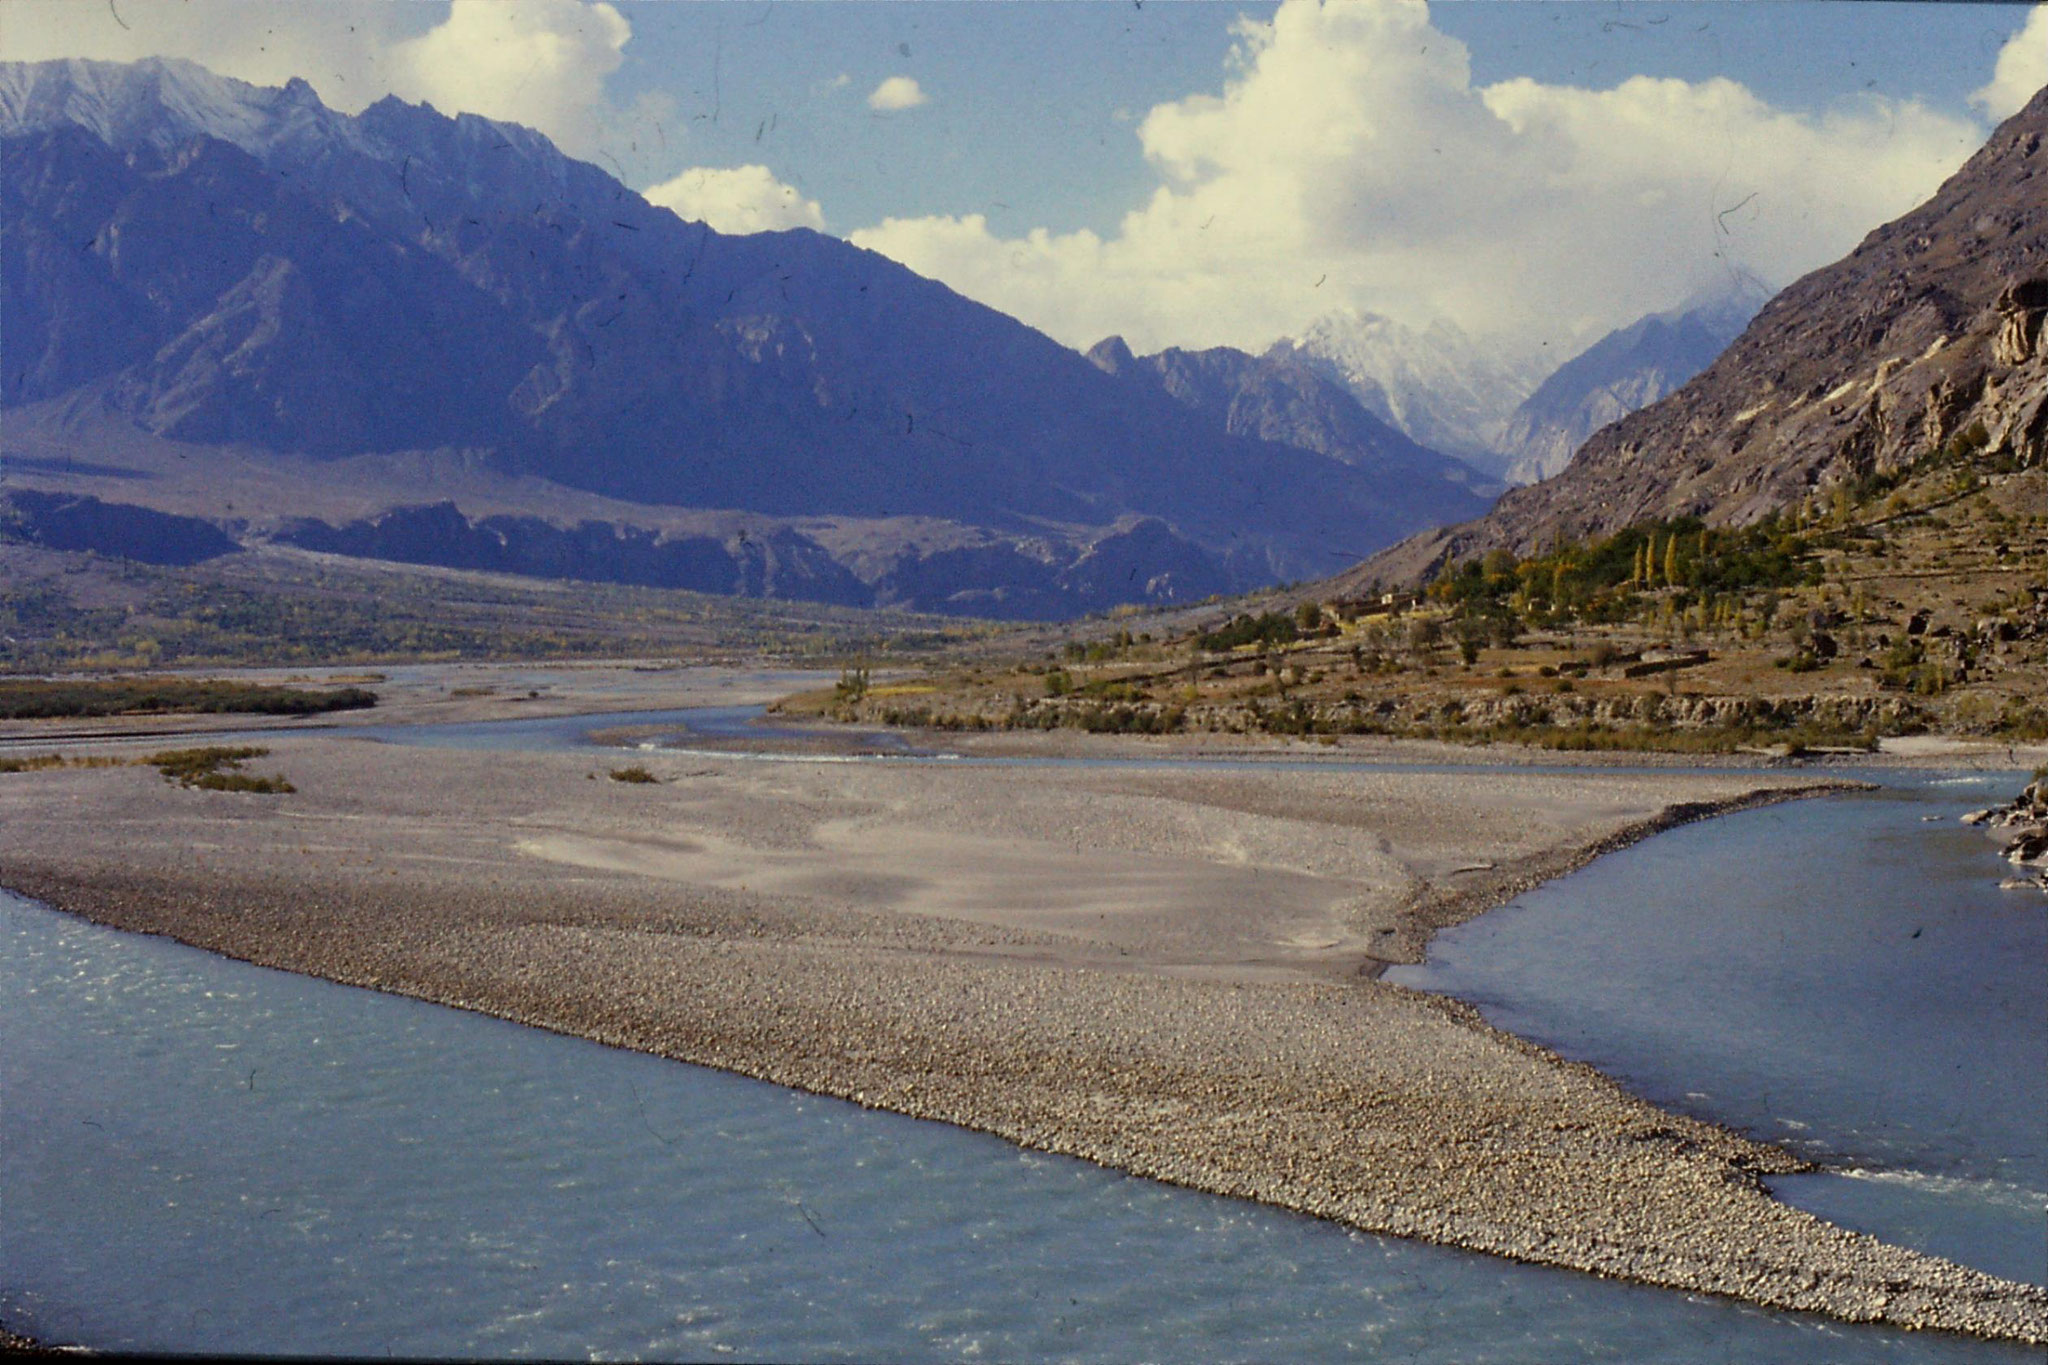 25/10/1989: 30: Ghizer river, Ghakuth Gorge